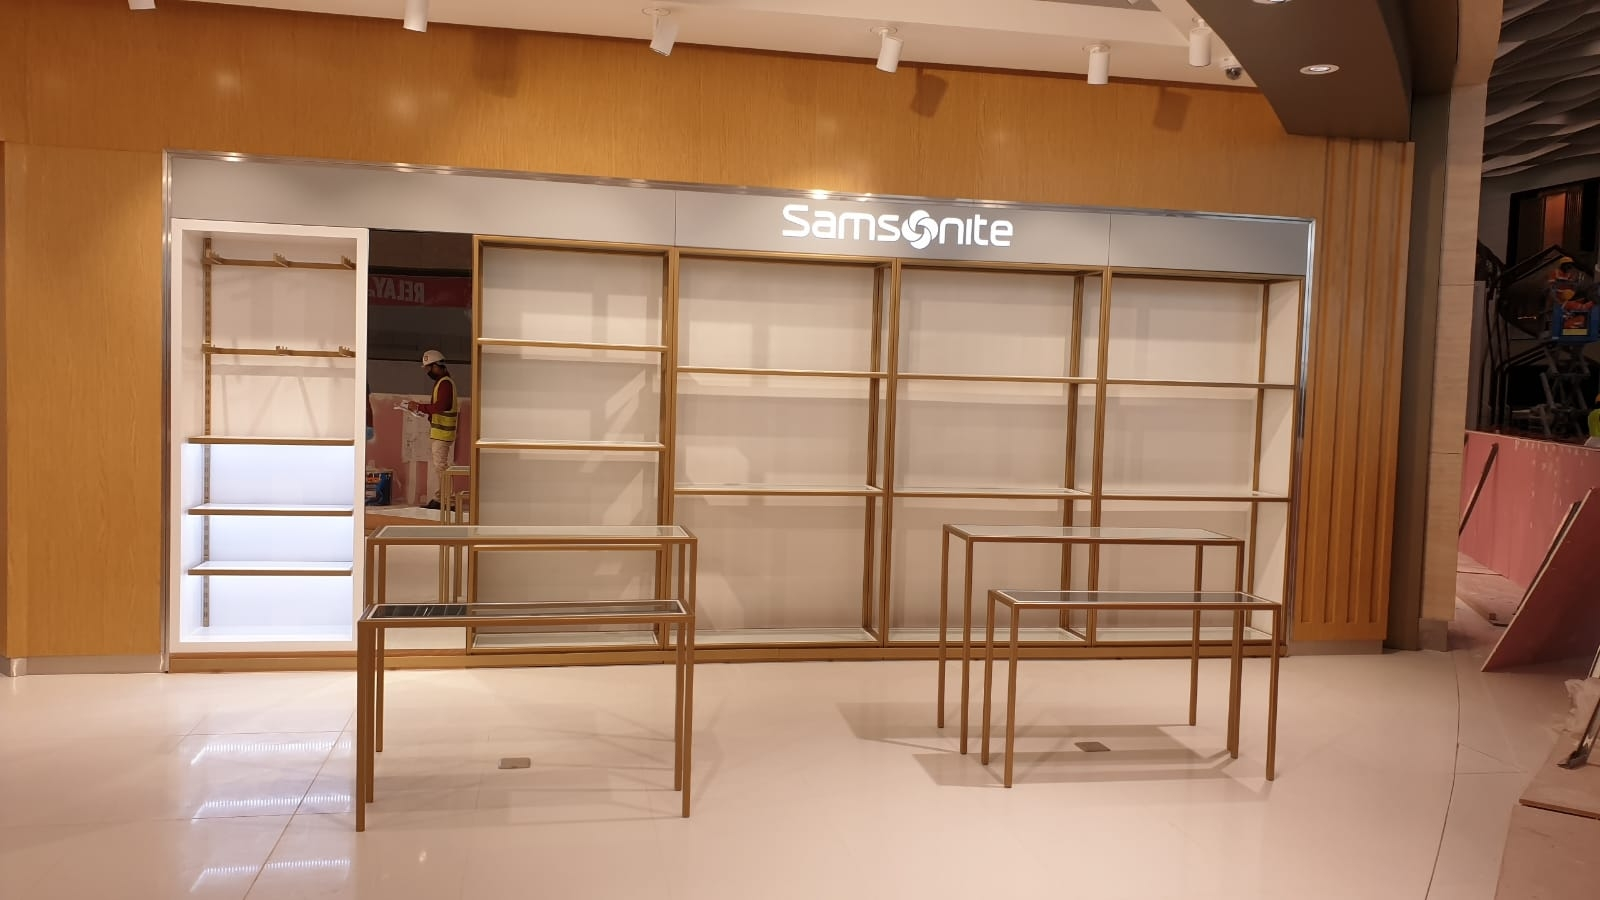 Samsonite Joinery & Installation